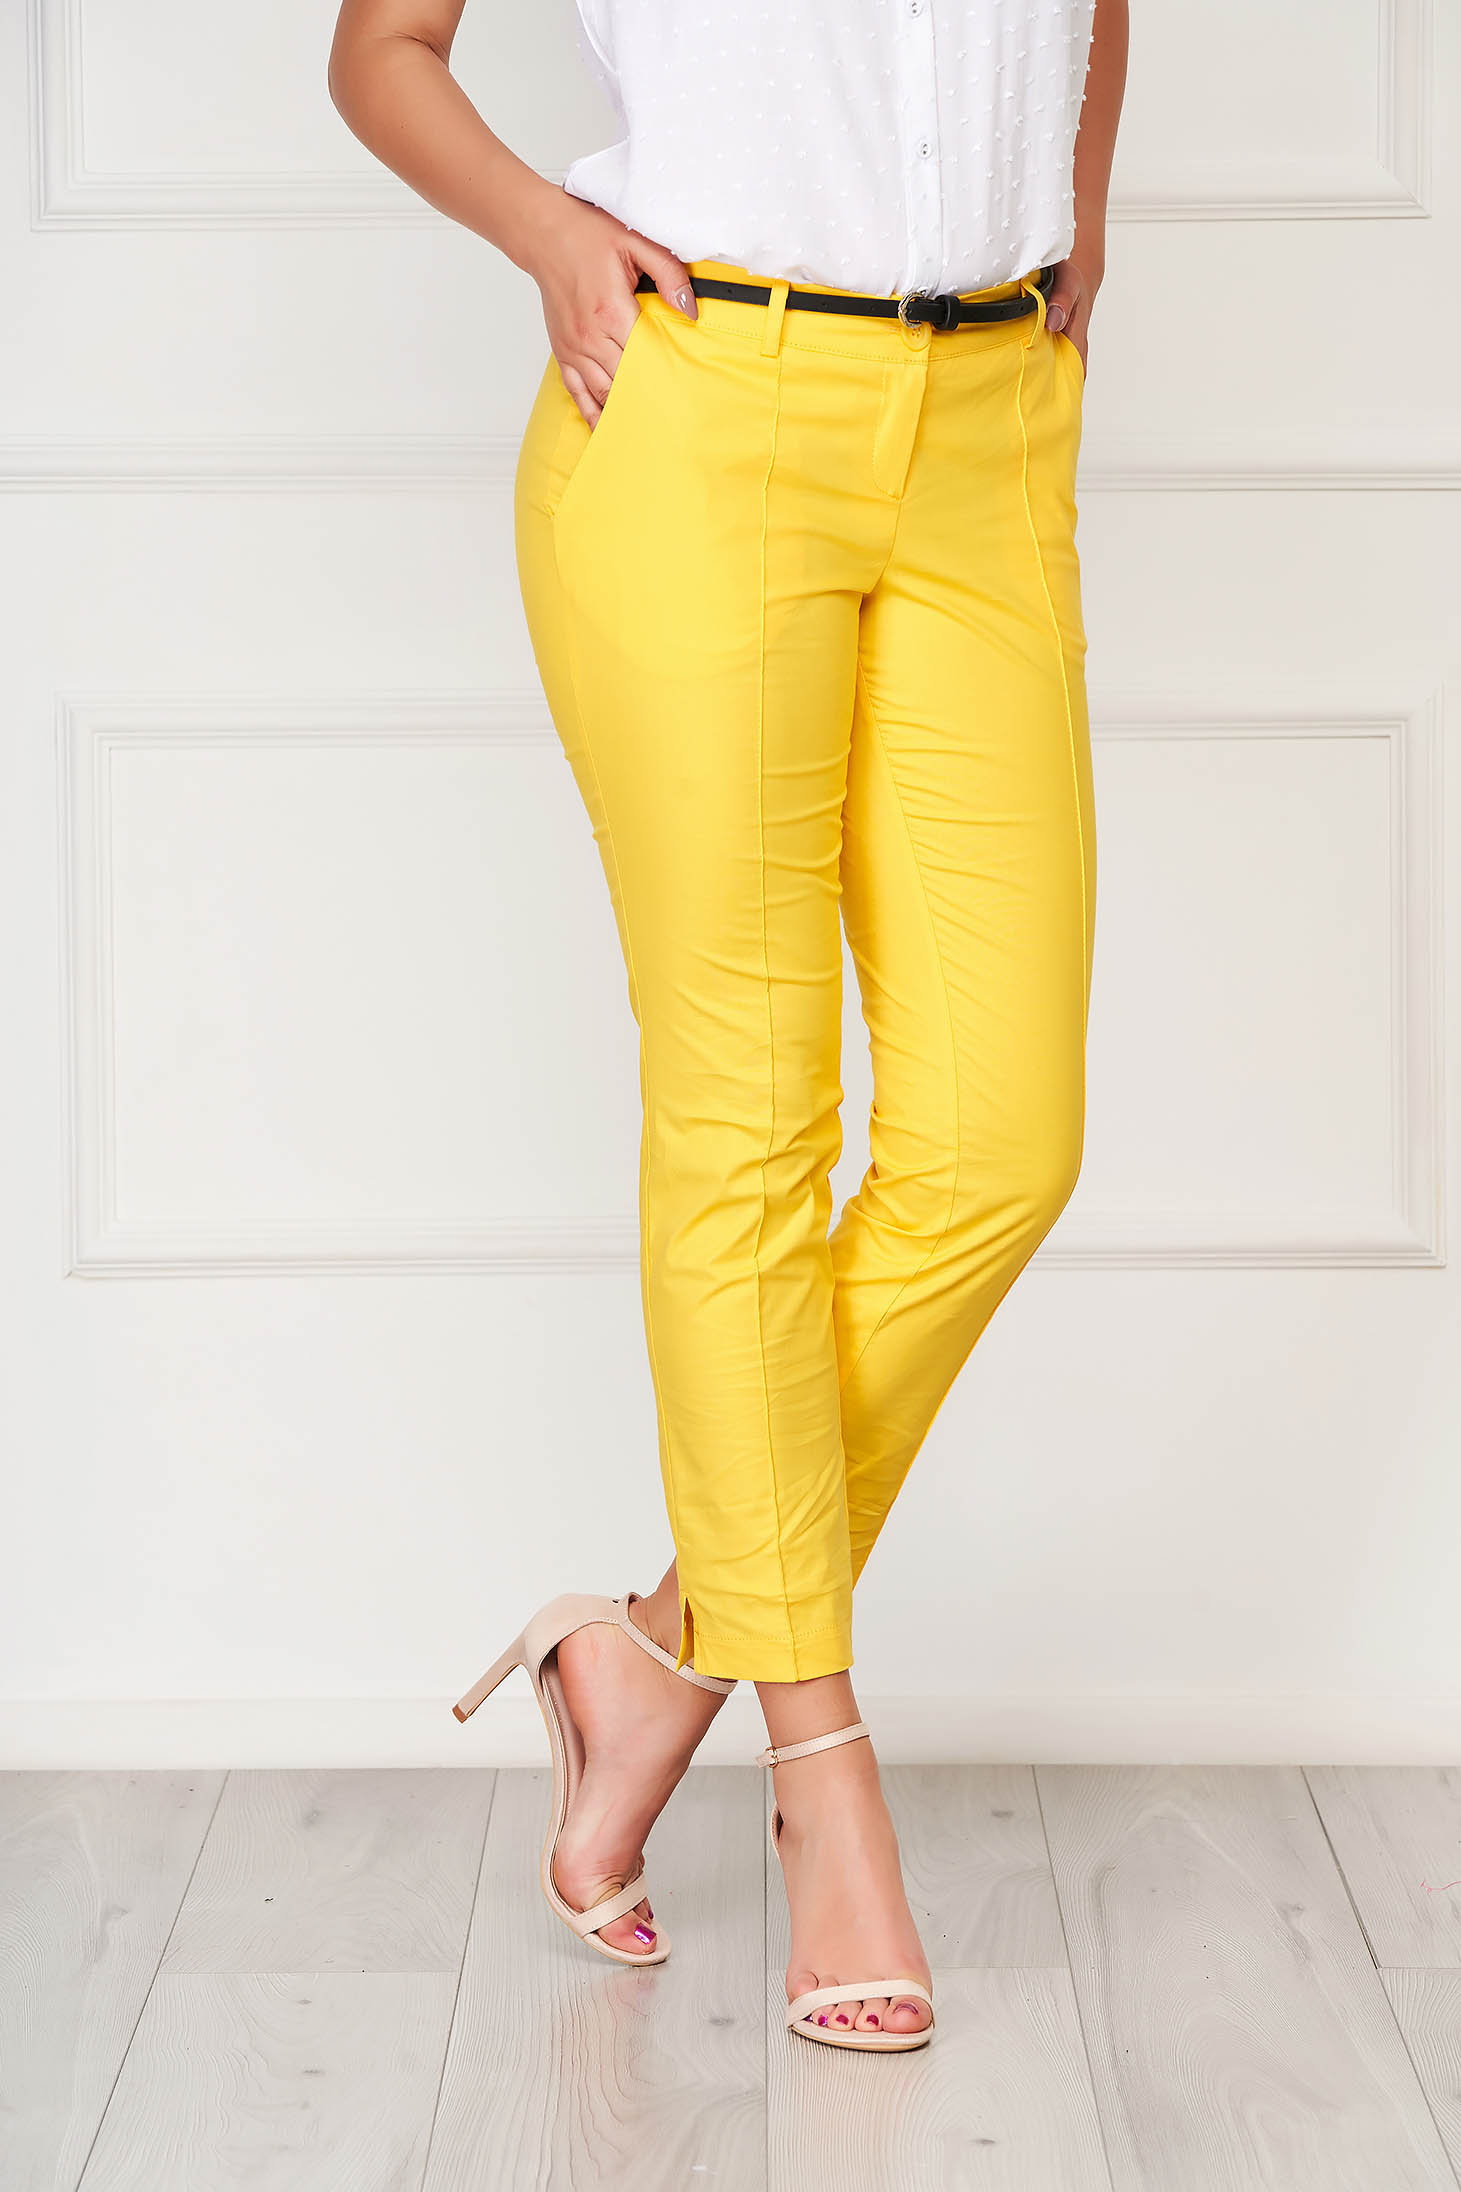 Yellow trousers office cotton conical with pockets